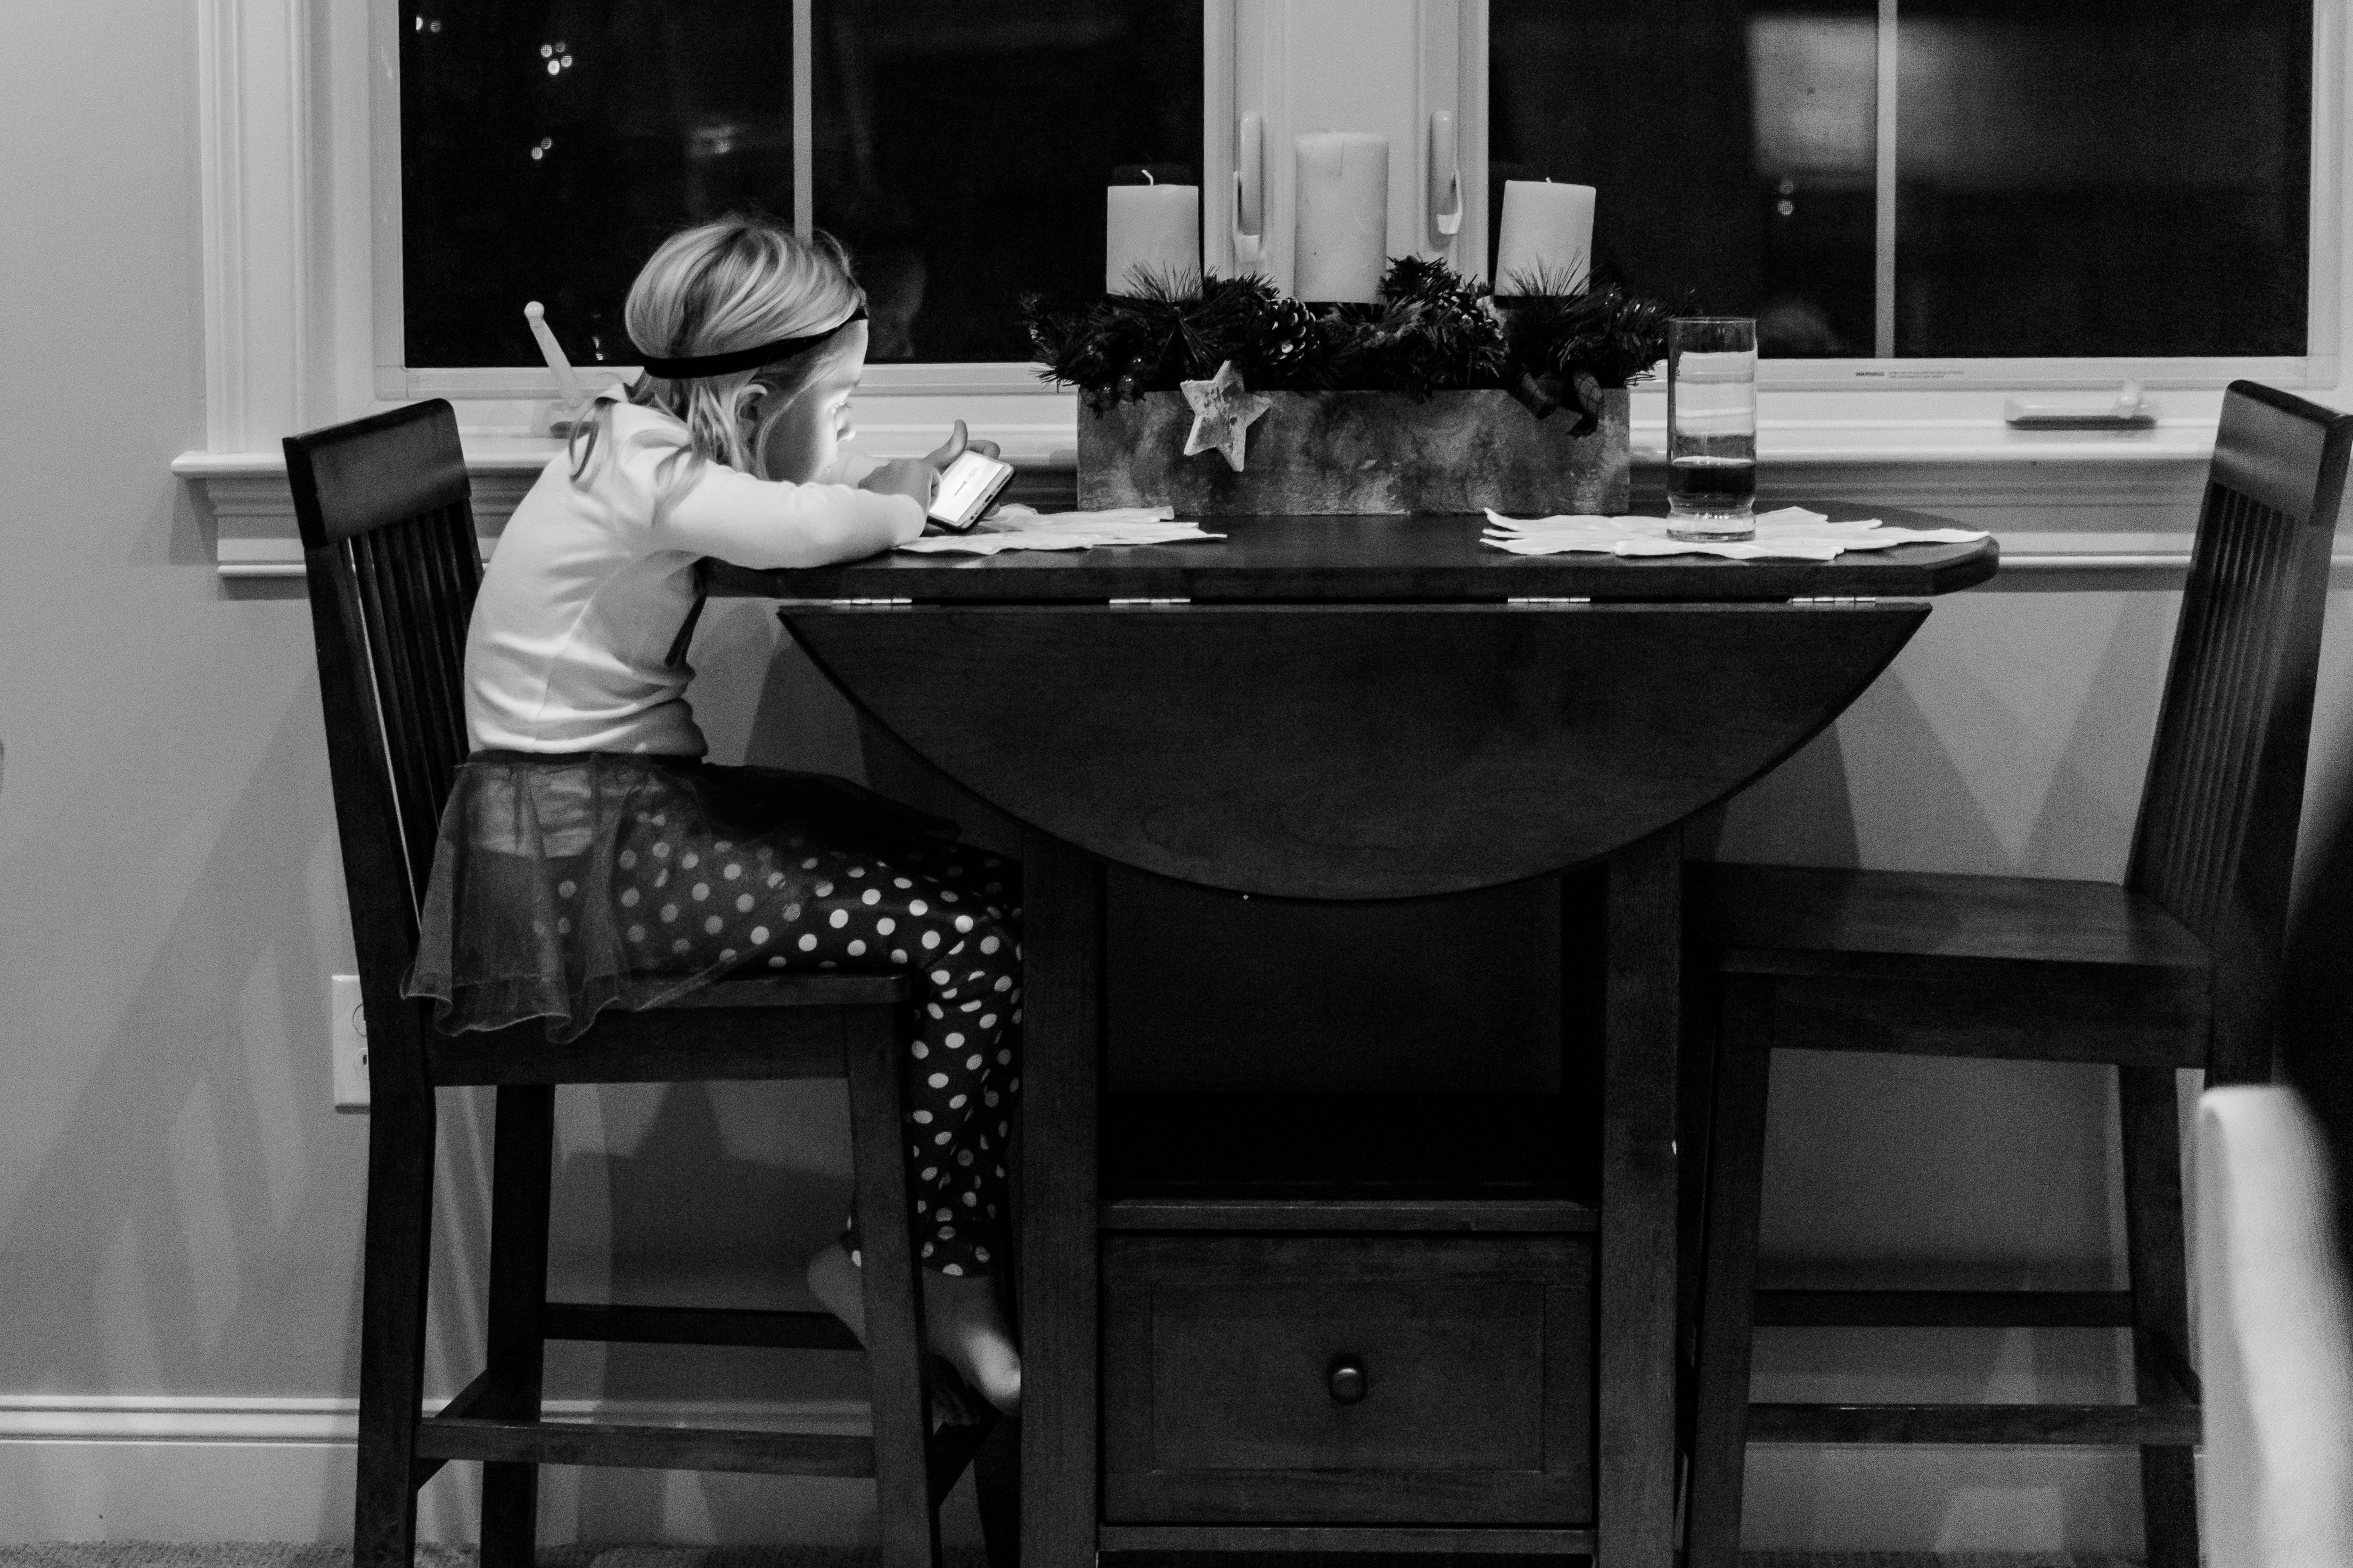 girl at table using iphone